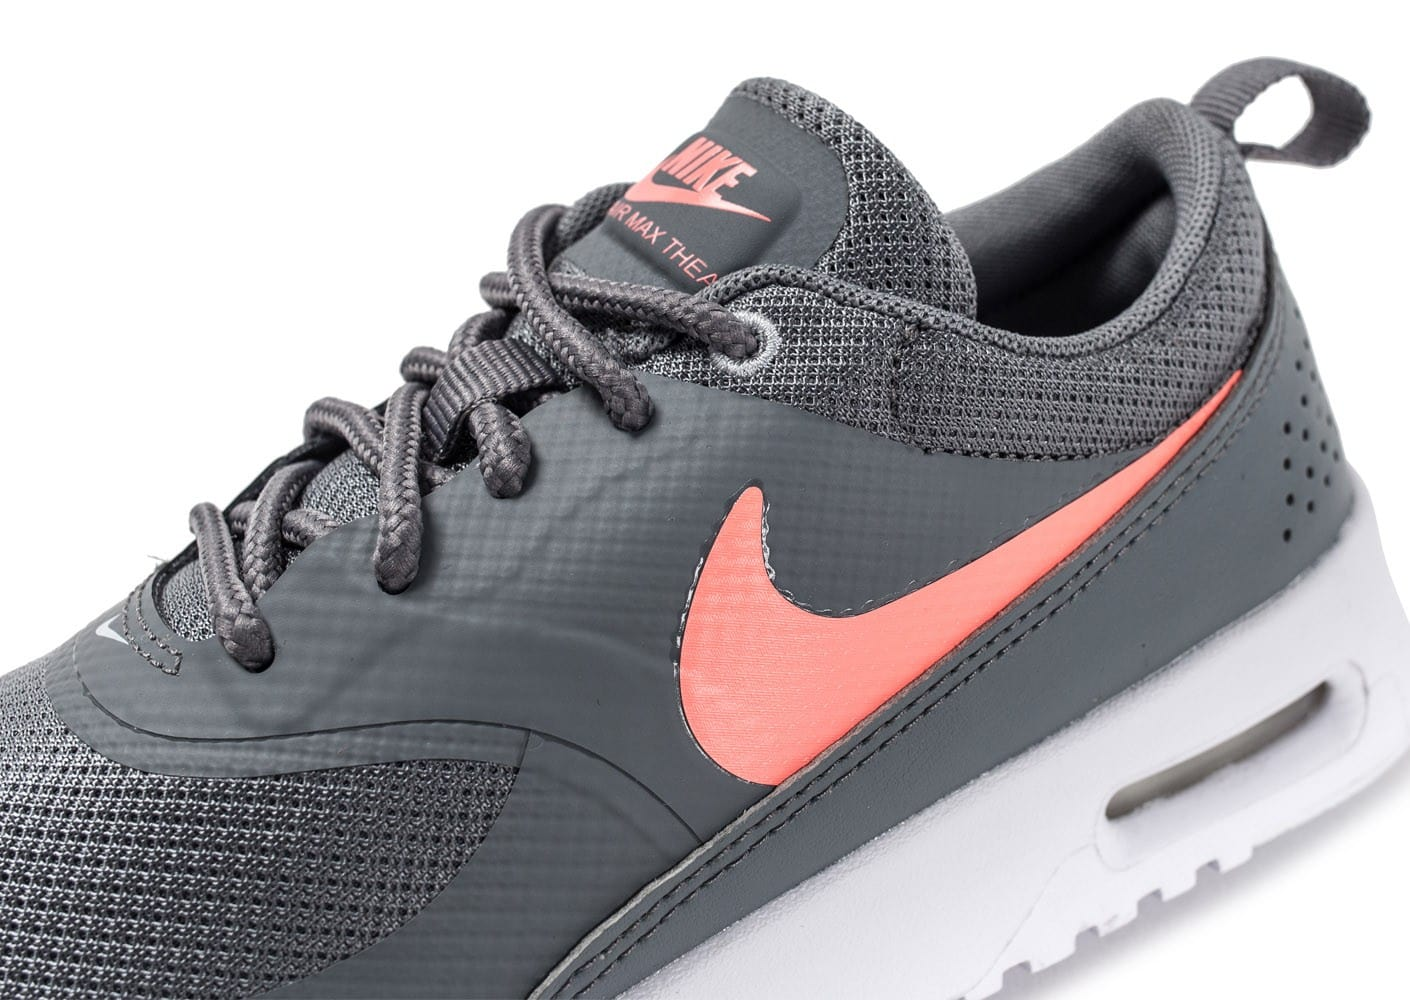 nike air max thea enfant grise et rose chaussures enfant chausport. Black Bedroom Furniture Sets. Home Design Ideas